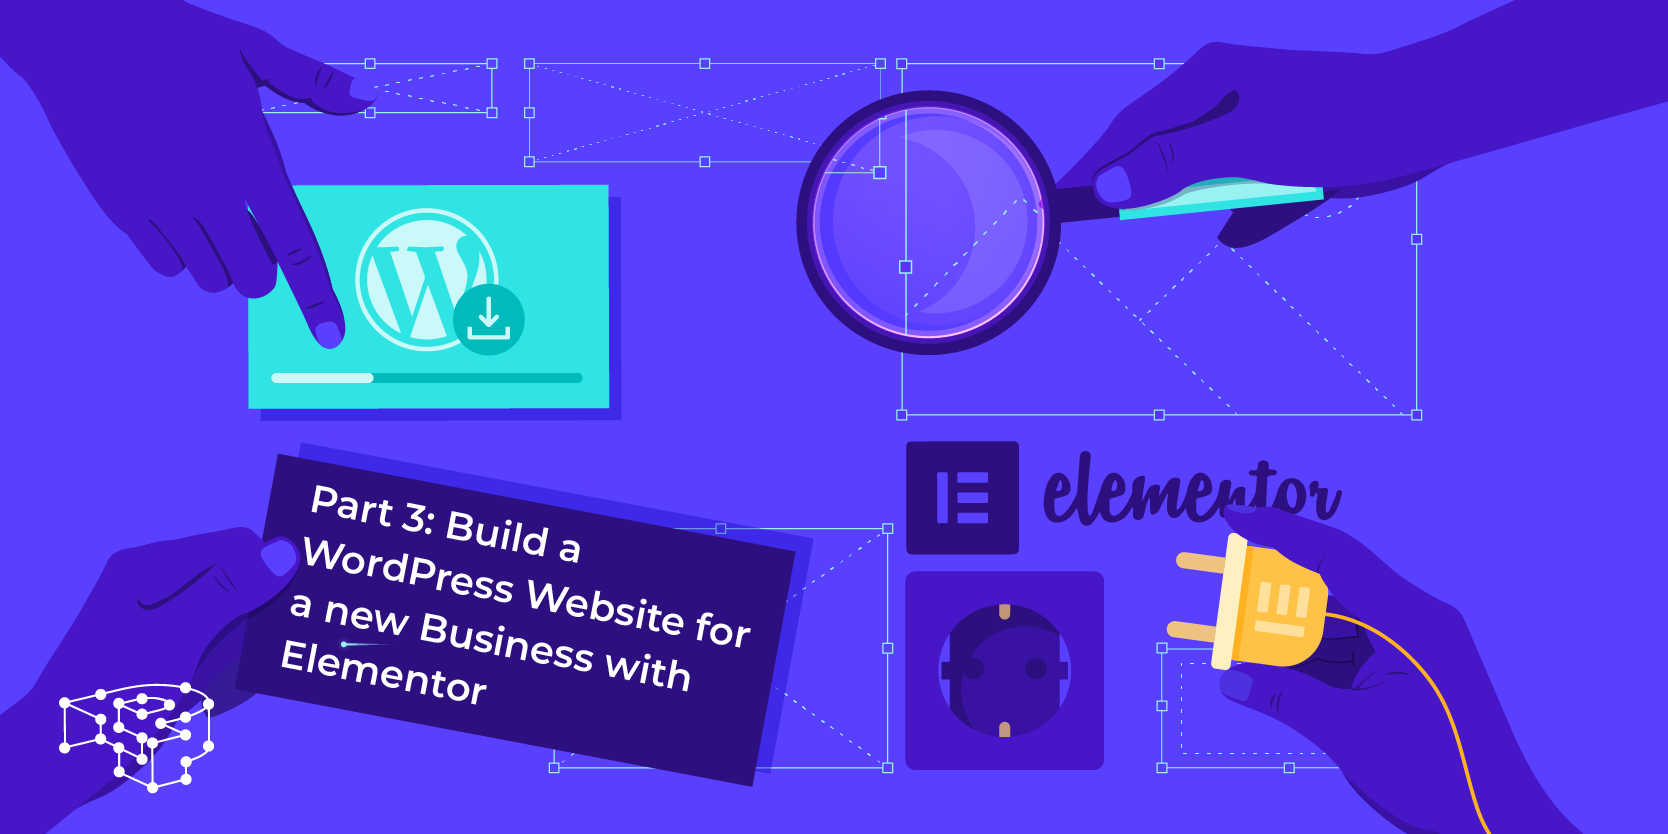 Image for Part 3: Build a WordPress Website for a new Business with Elementor